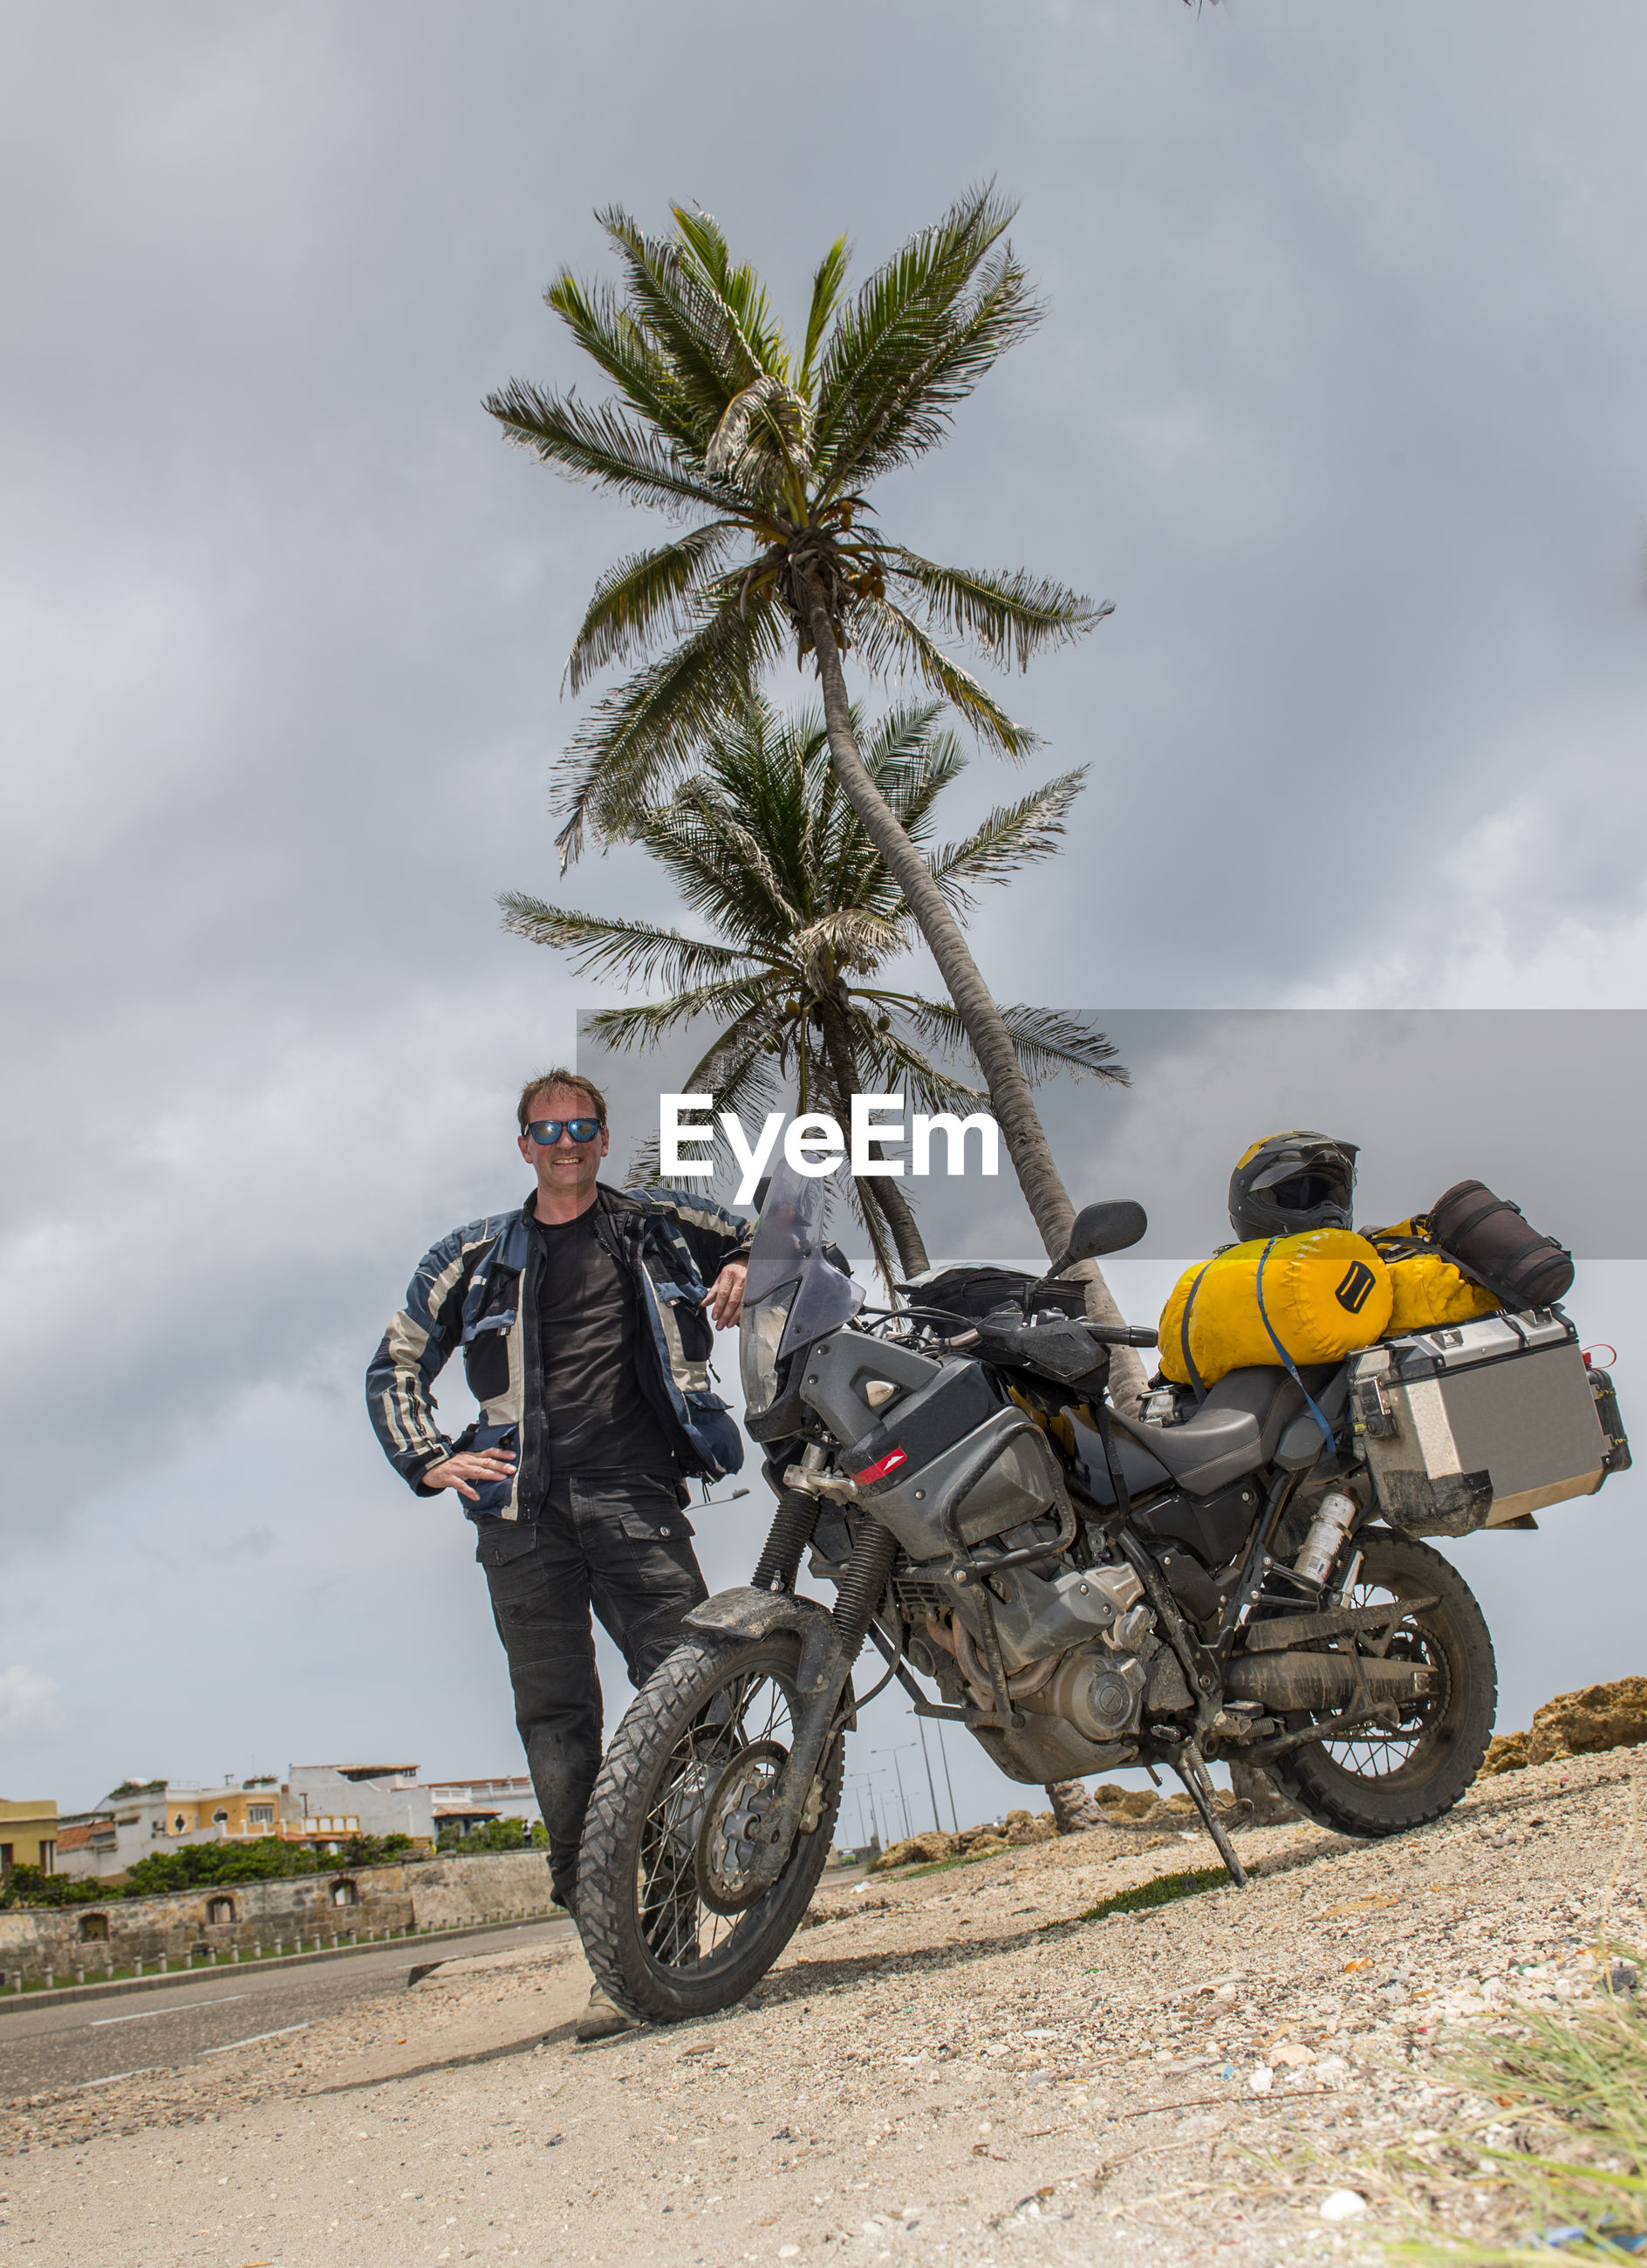 MAN RIDING MOTORCYCLE AGAINST SKY